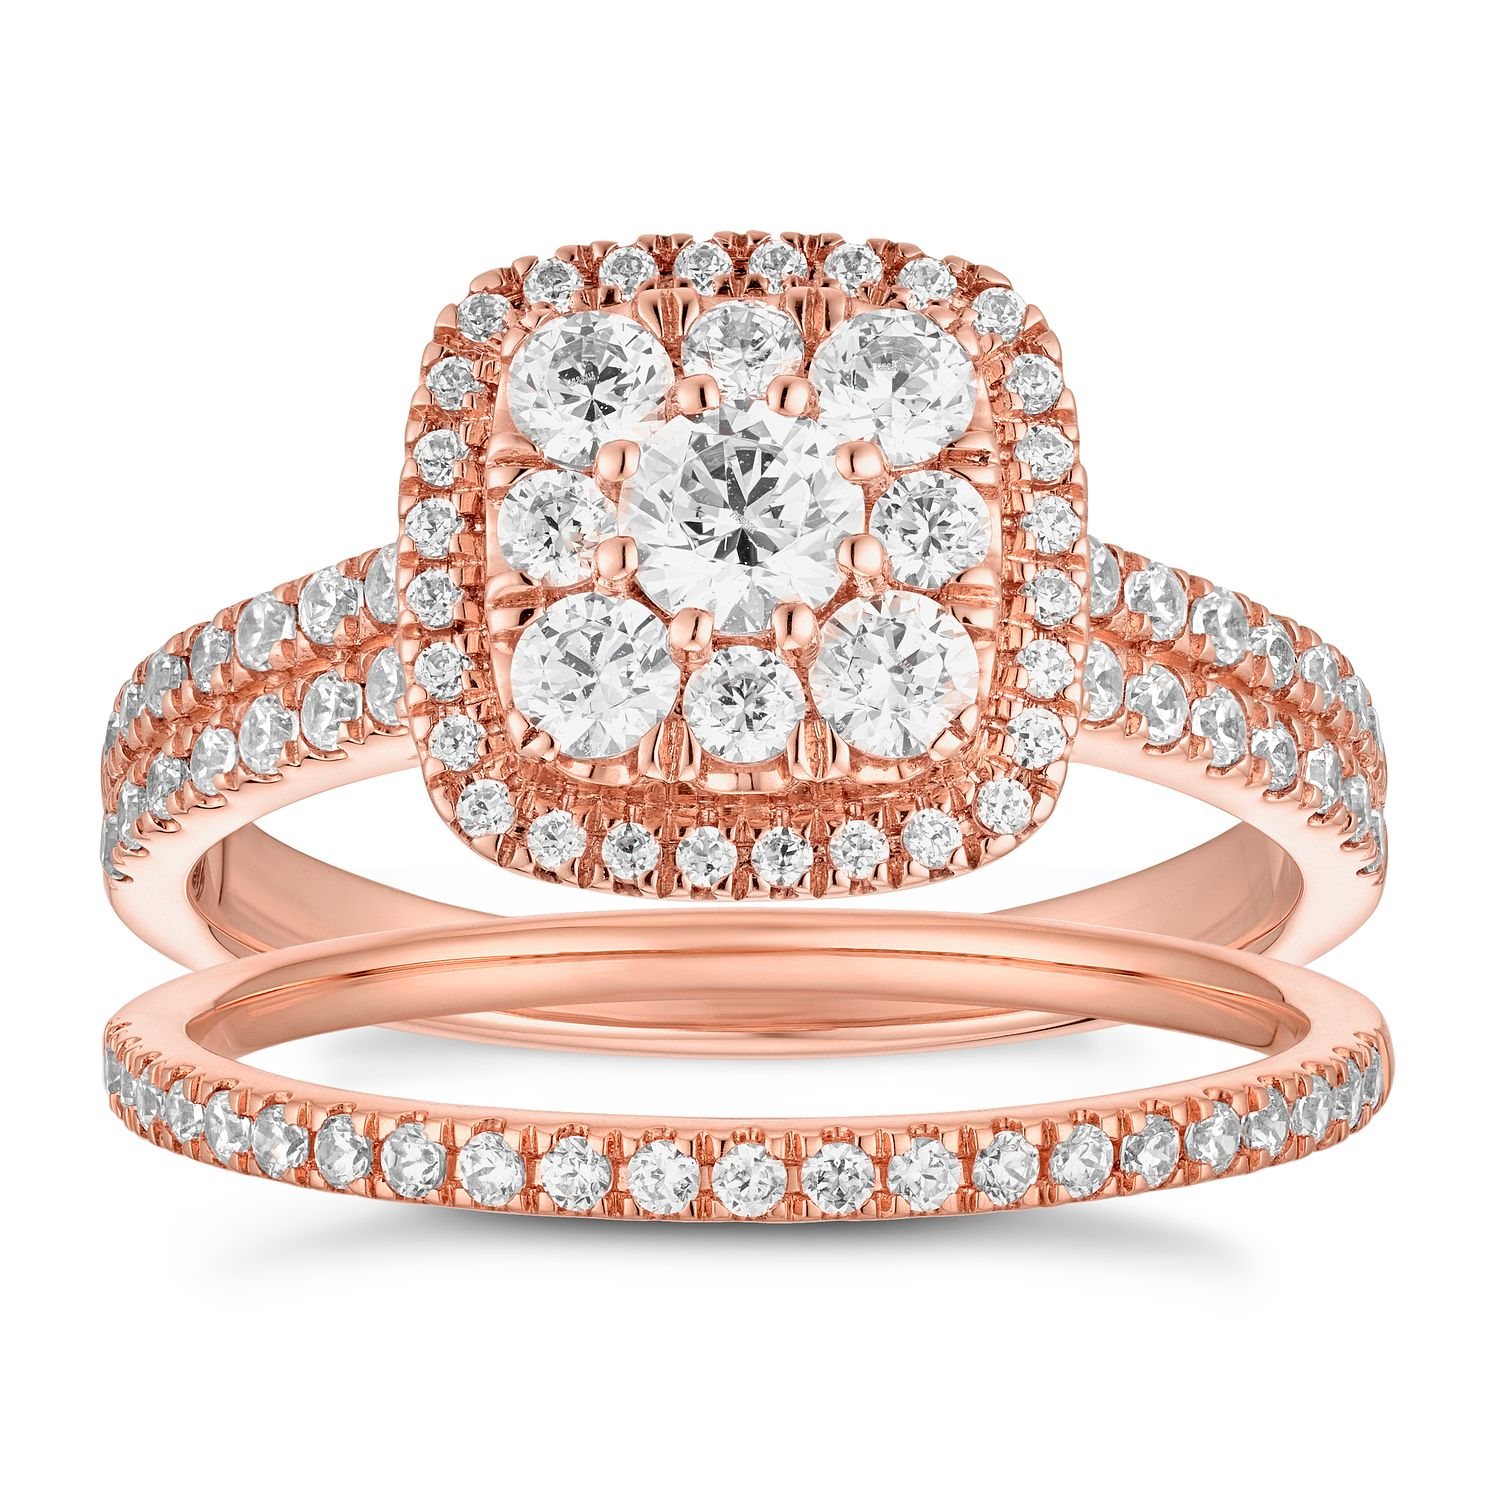 18ct Rose Gold 1ct Diamond Cushion Bridal Set - Product number 5702445